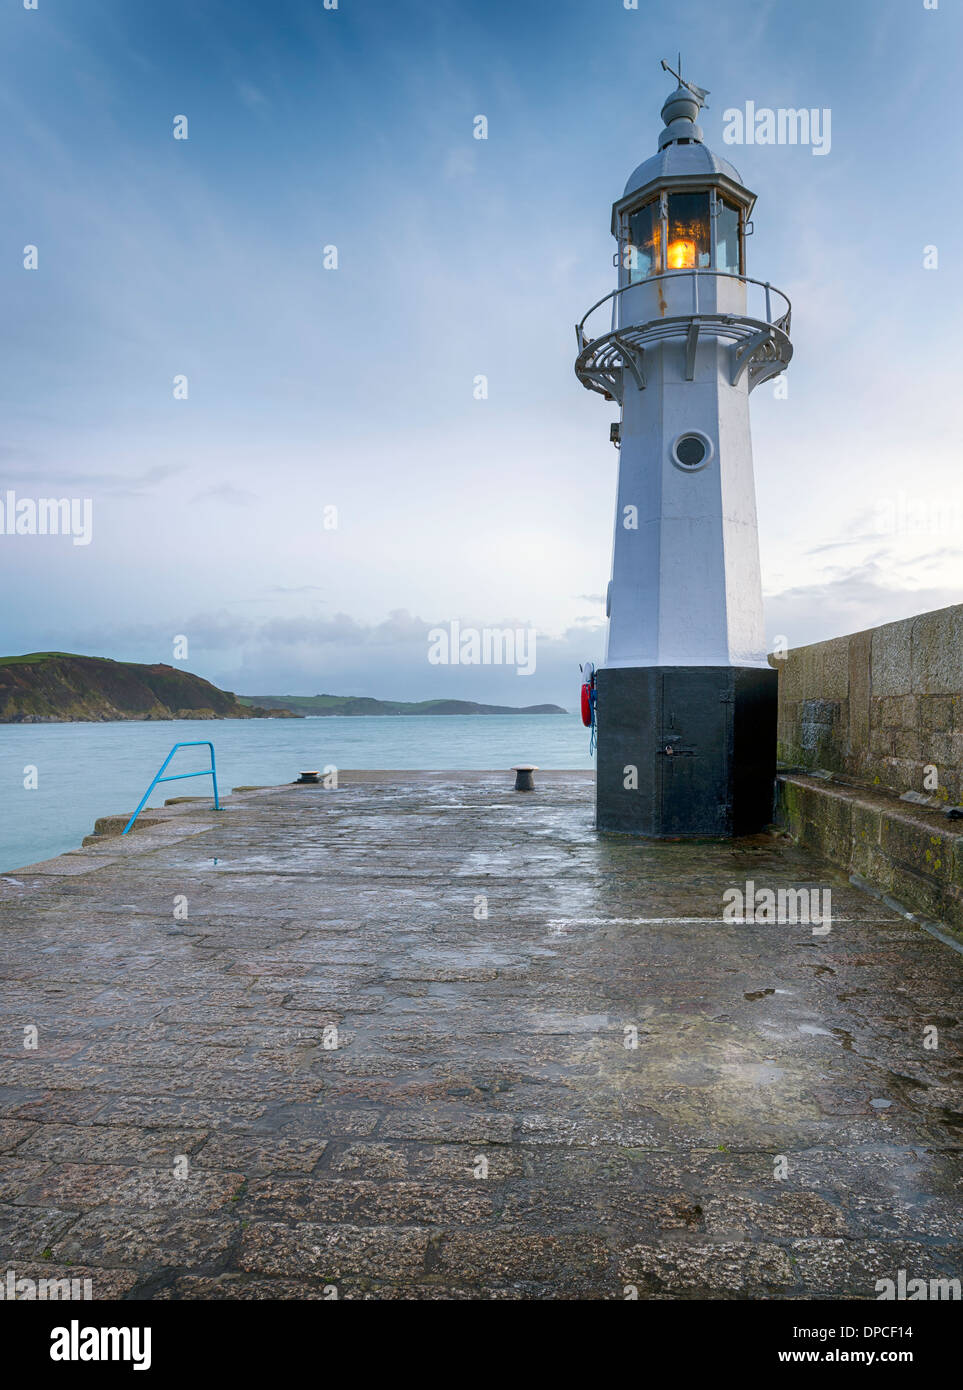 The lighthouse at Mevagissey on the south coast of Cornwall - Stock Image